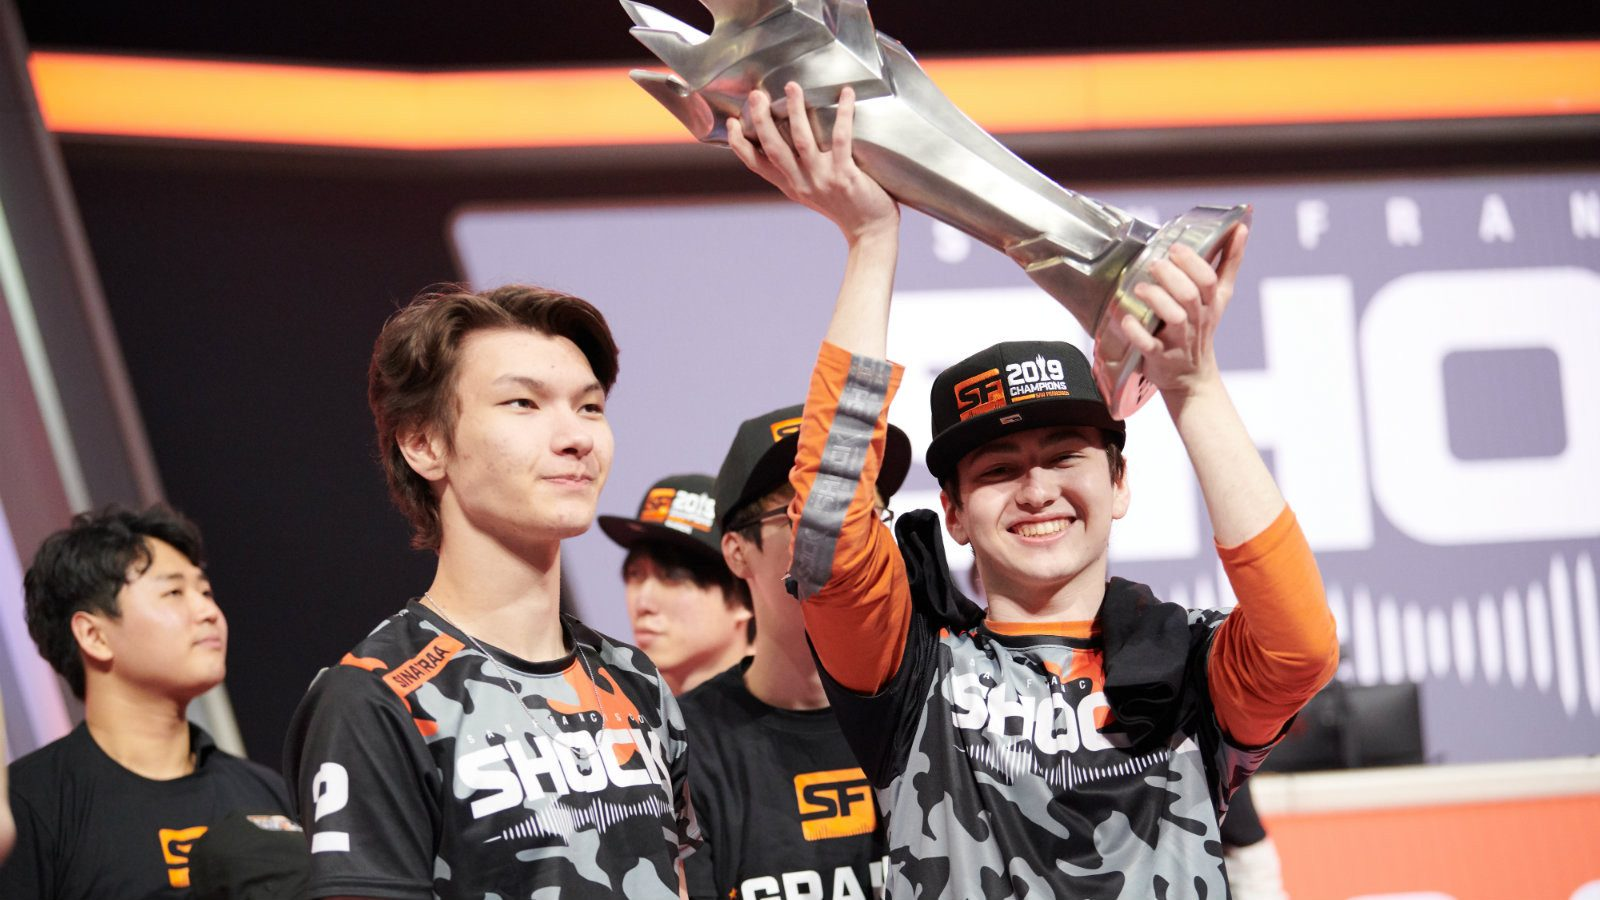 Sinatraa and Super in OWL Grand Finals